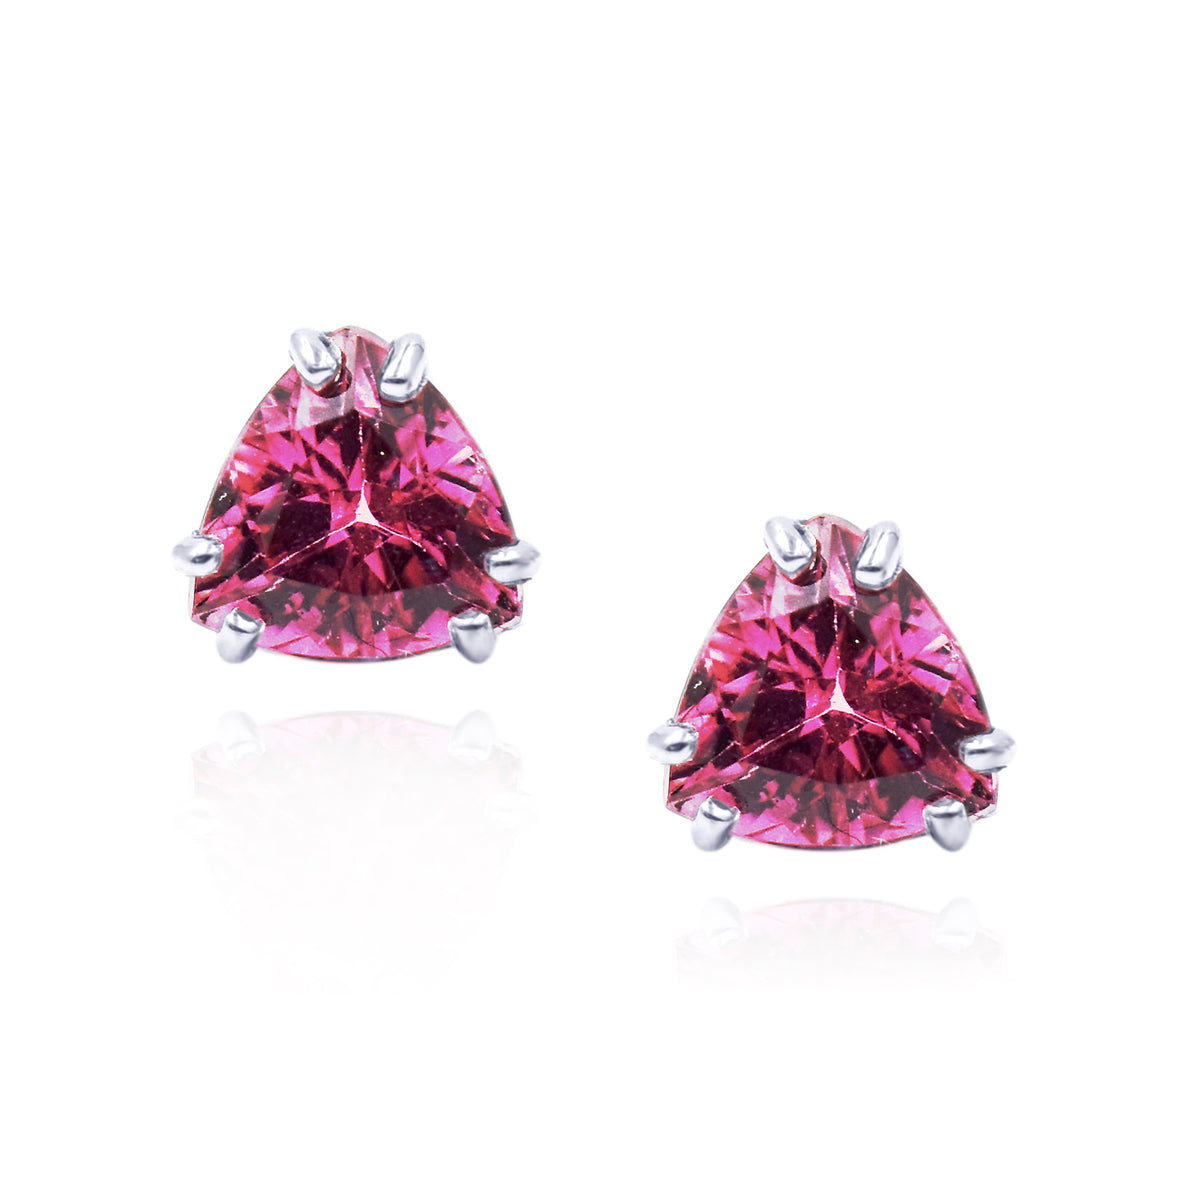 14K White Gold Triangle Cut Pink Tourmaline Stud Earrings